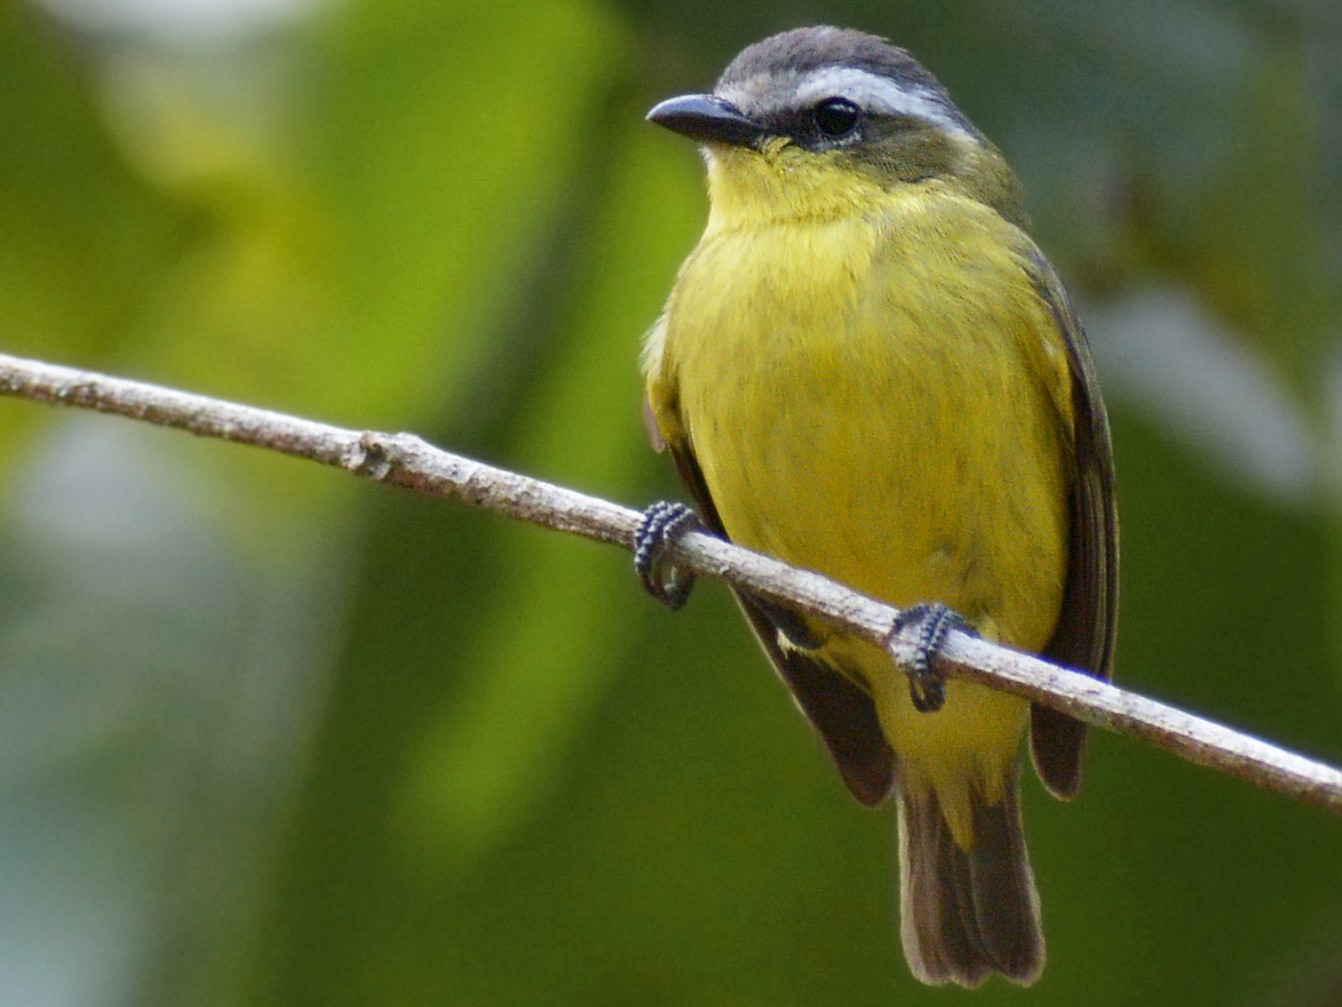 Yellow-bellied Tyrannulet - Jorge Dangel